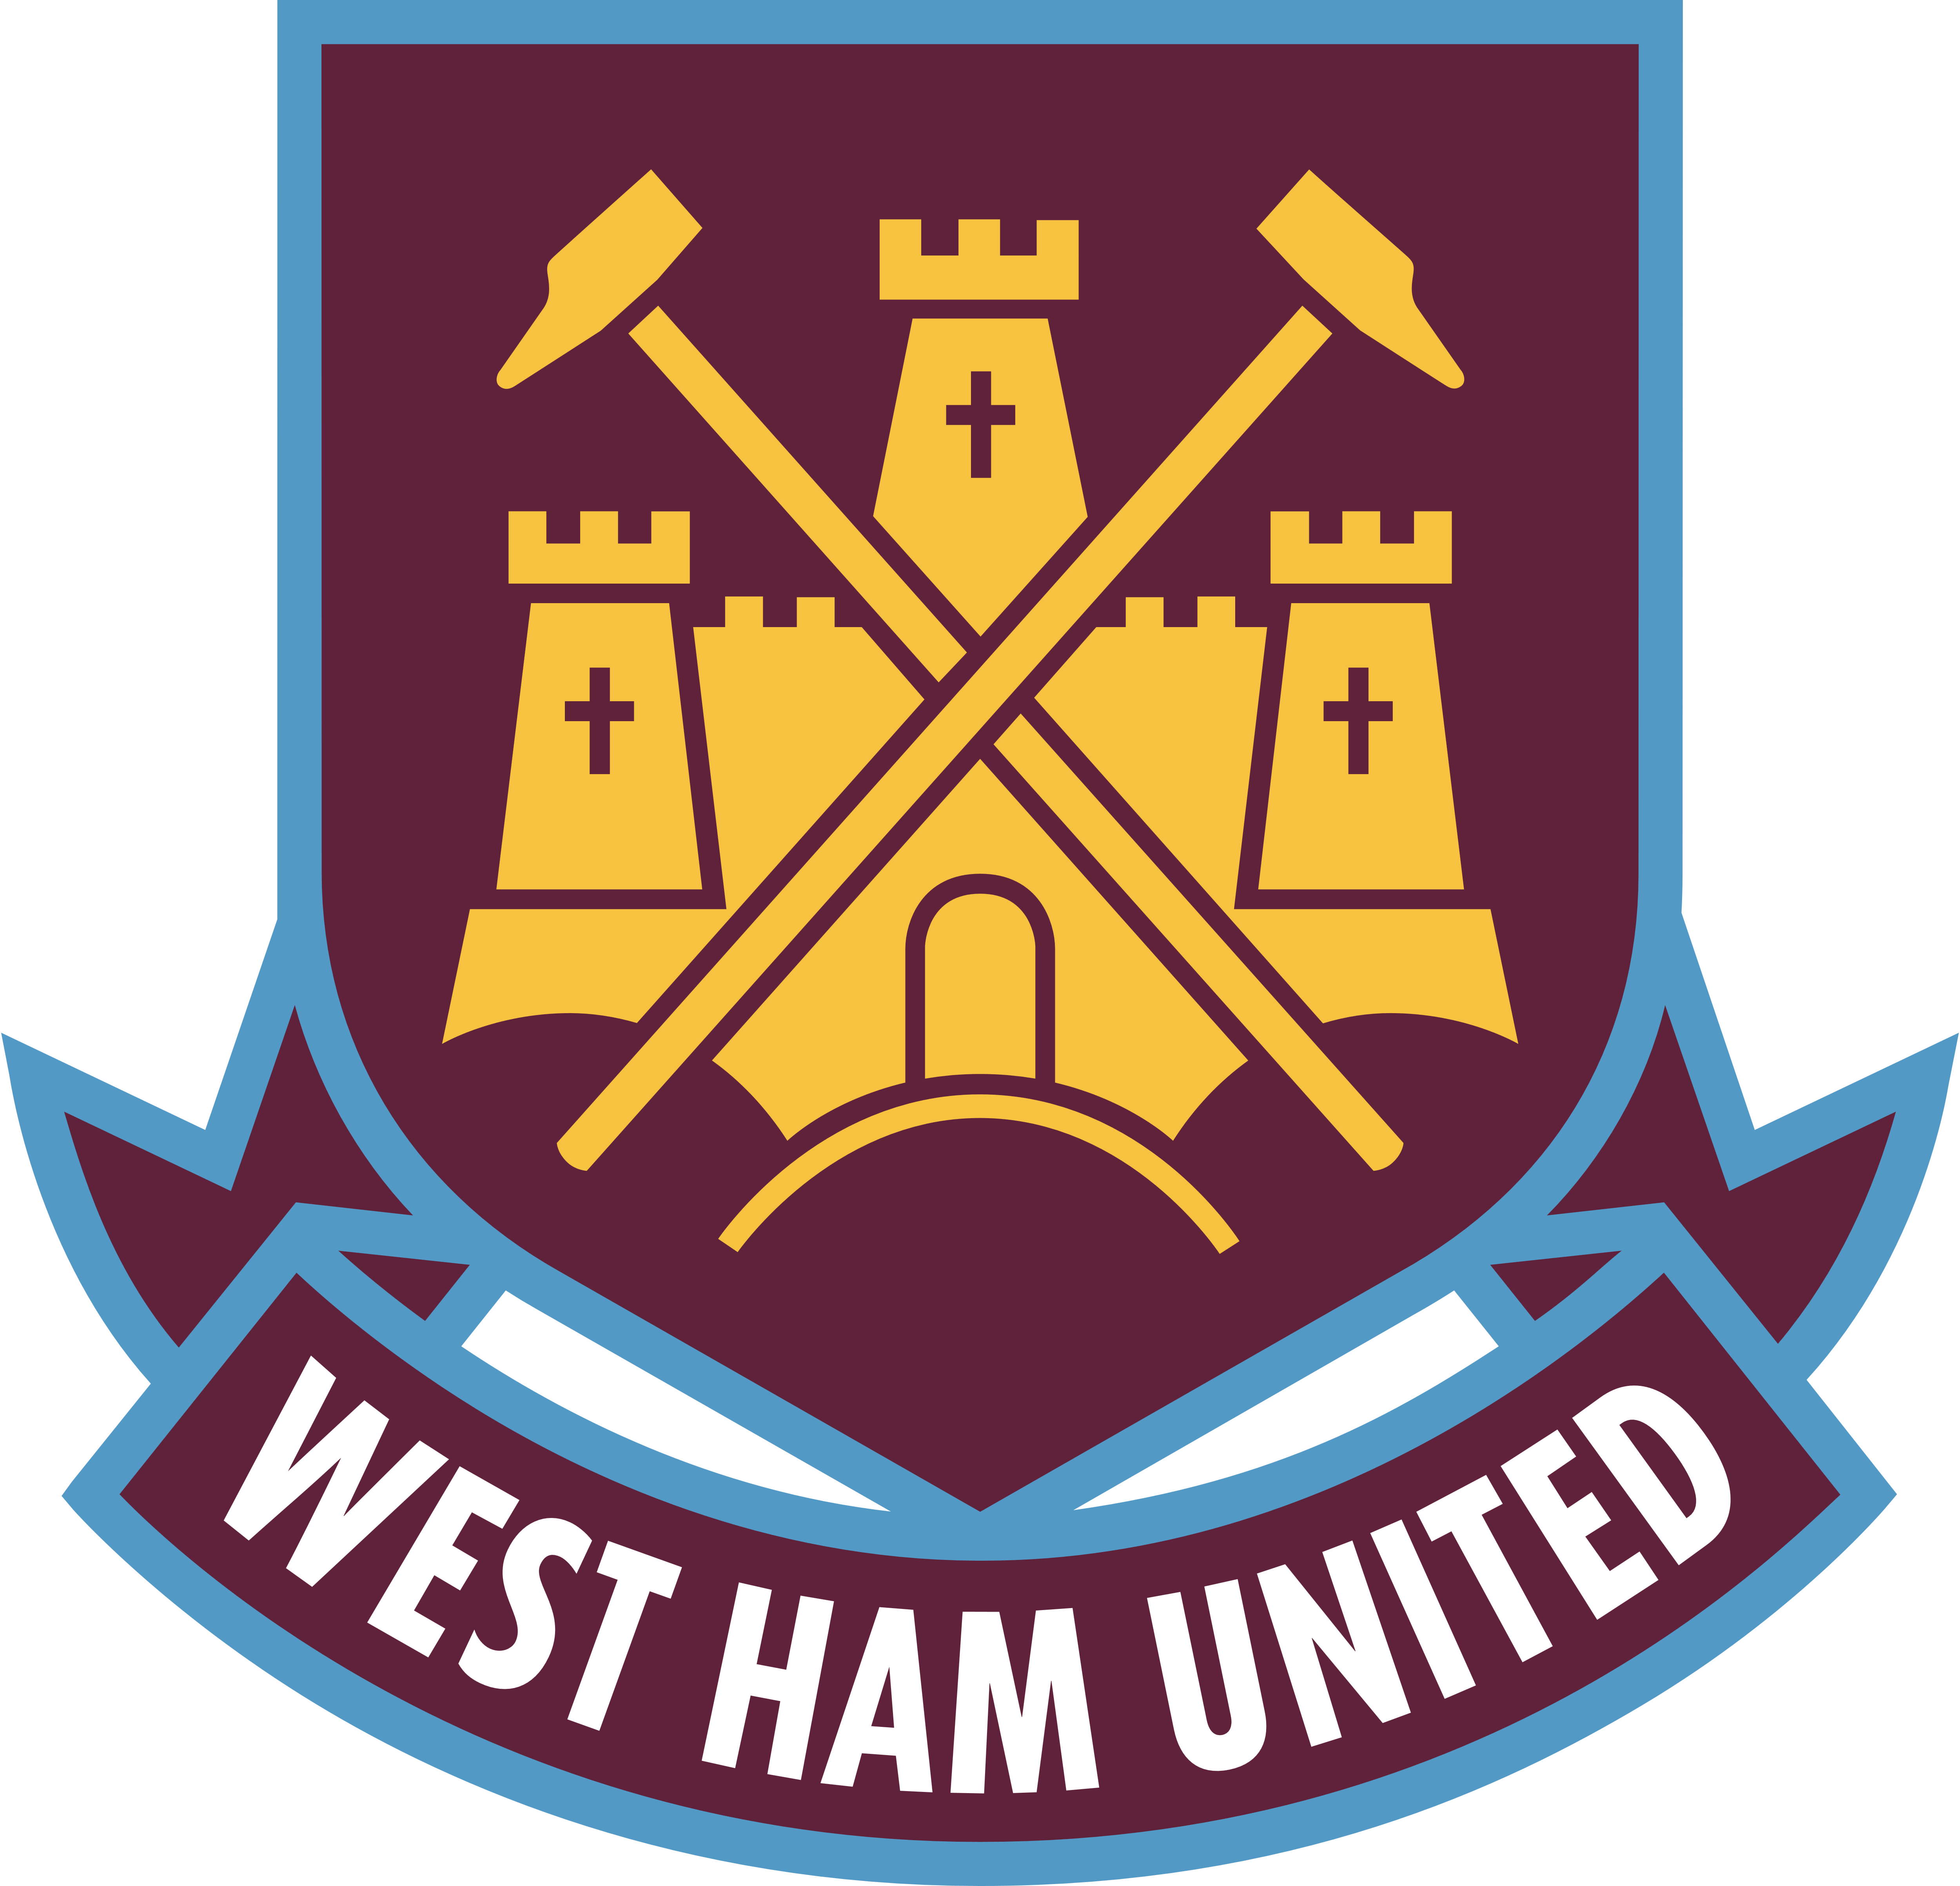 West Ham United.